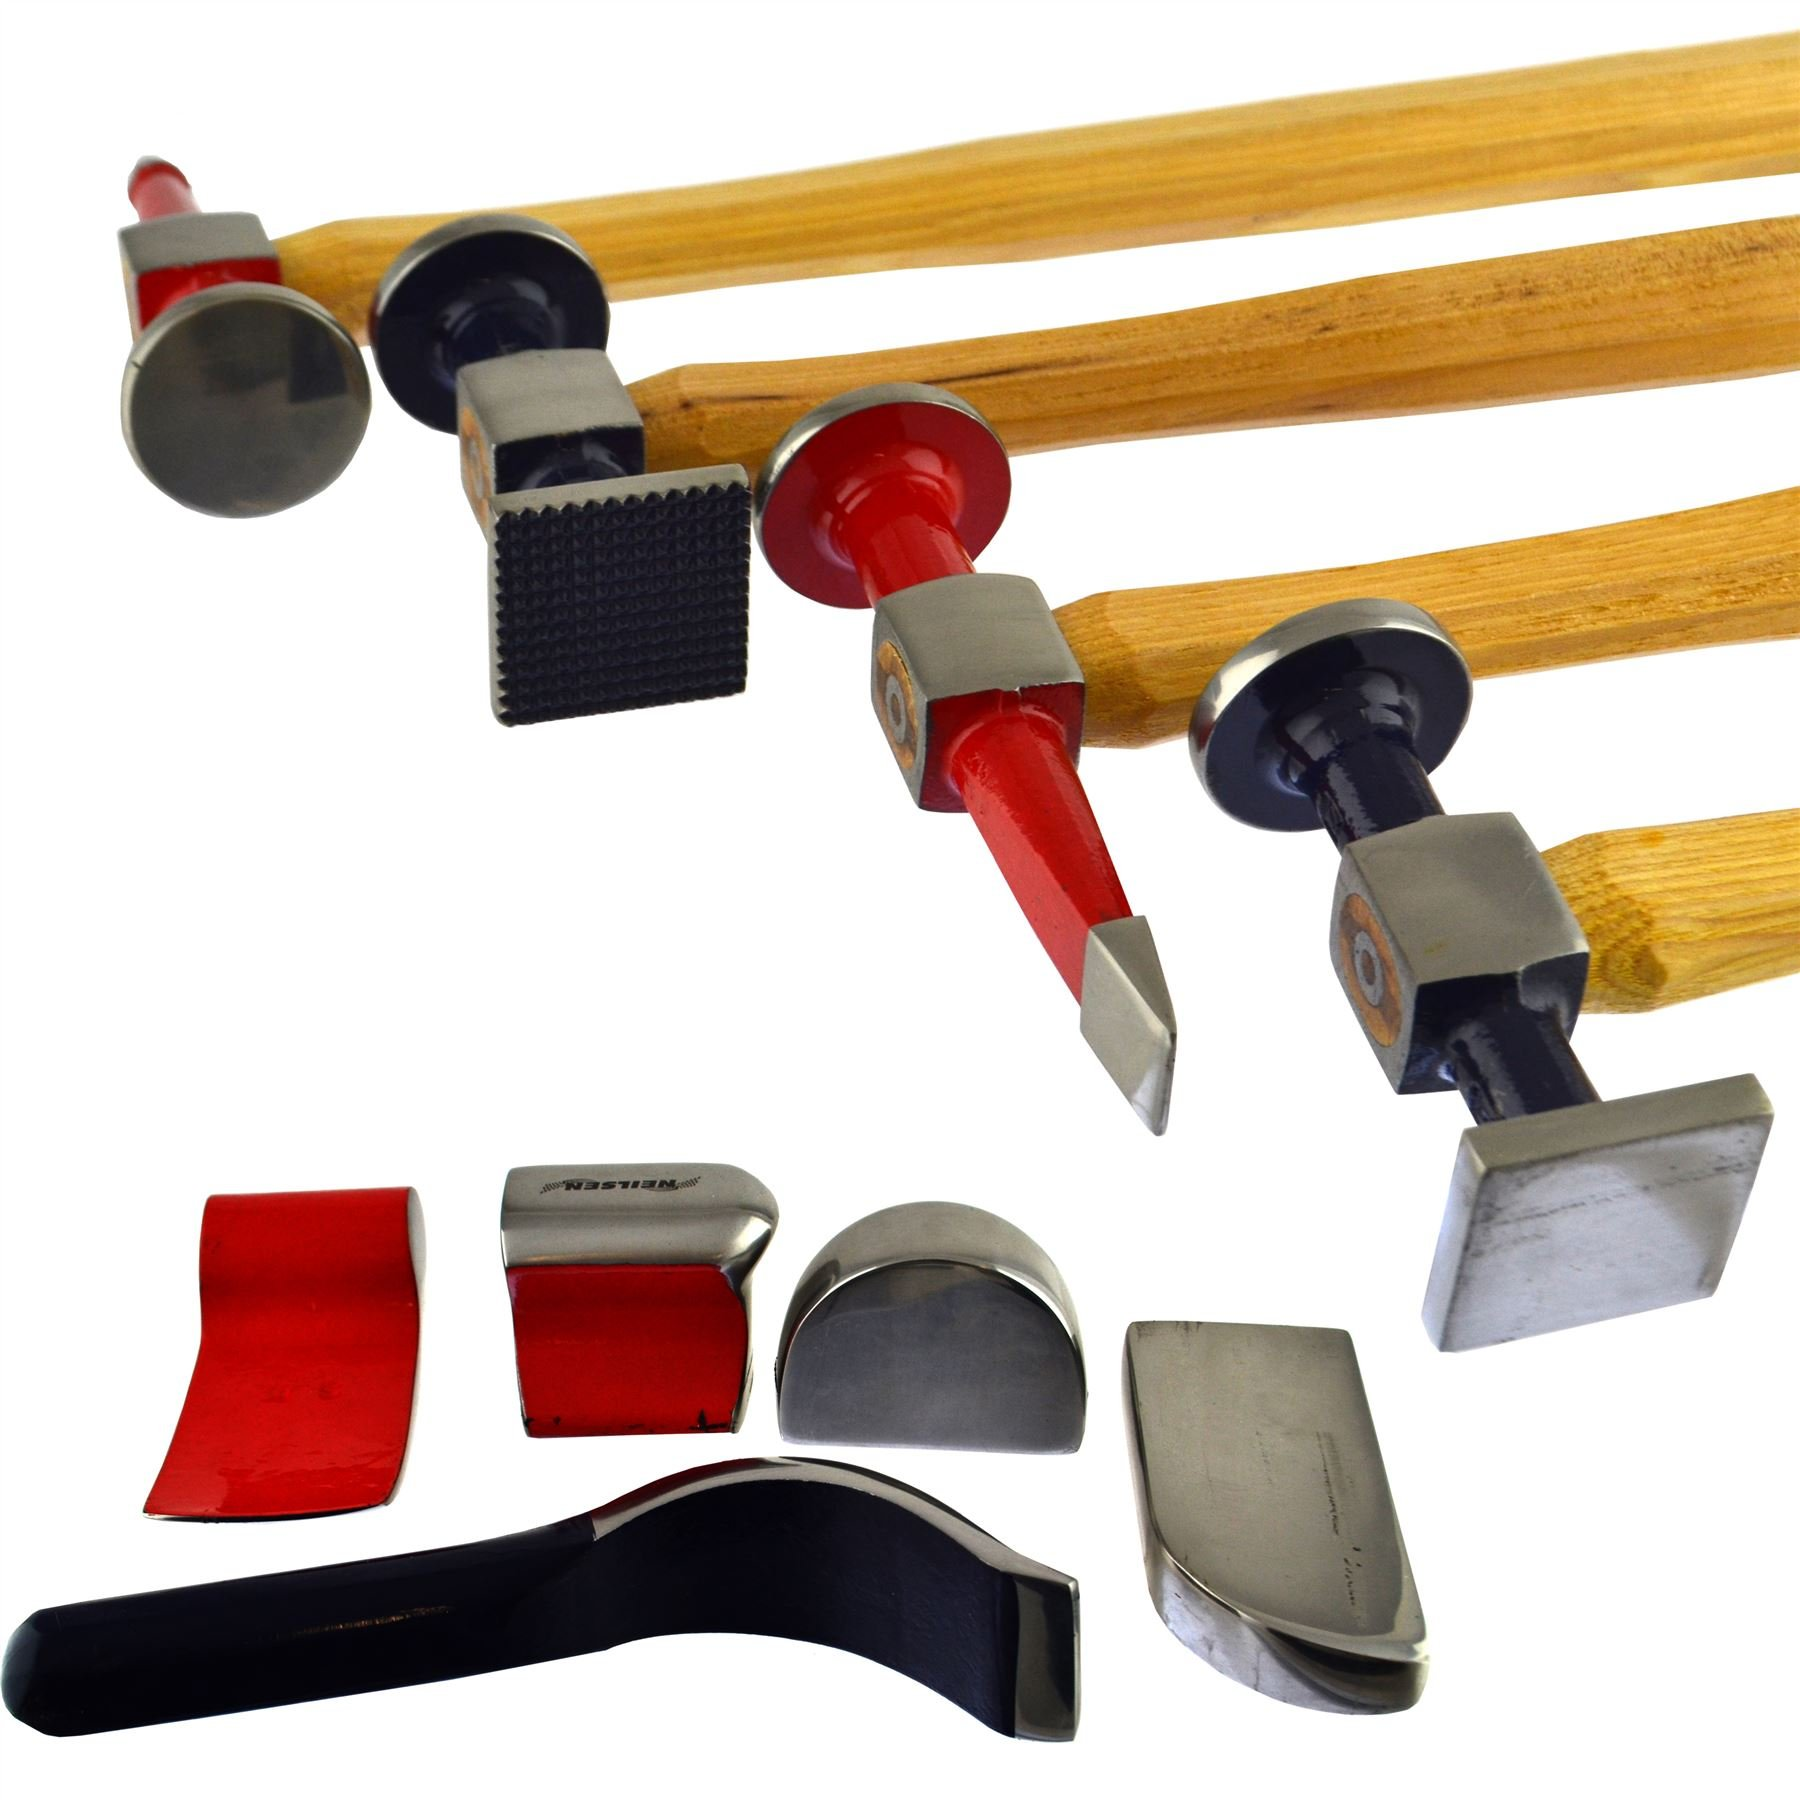 Auto body Repair Kit Panel Beating Hickory Hammers Dollies Shrinking Moulding 9pc by AB Tools-Neilsen (Image #2)